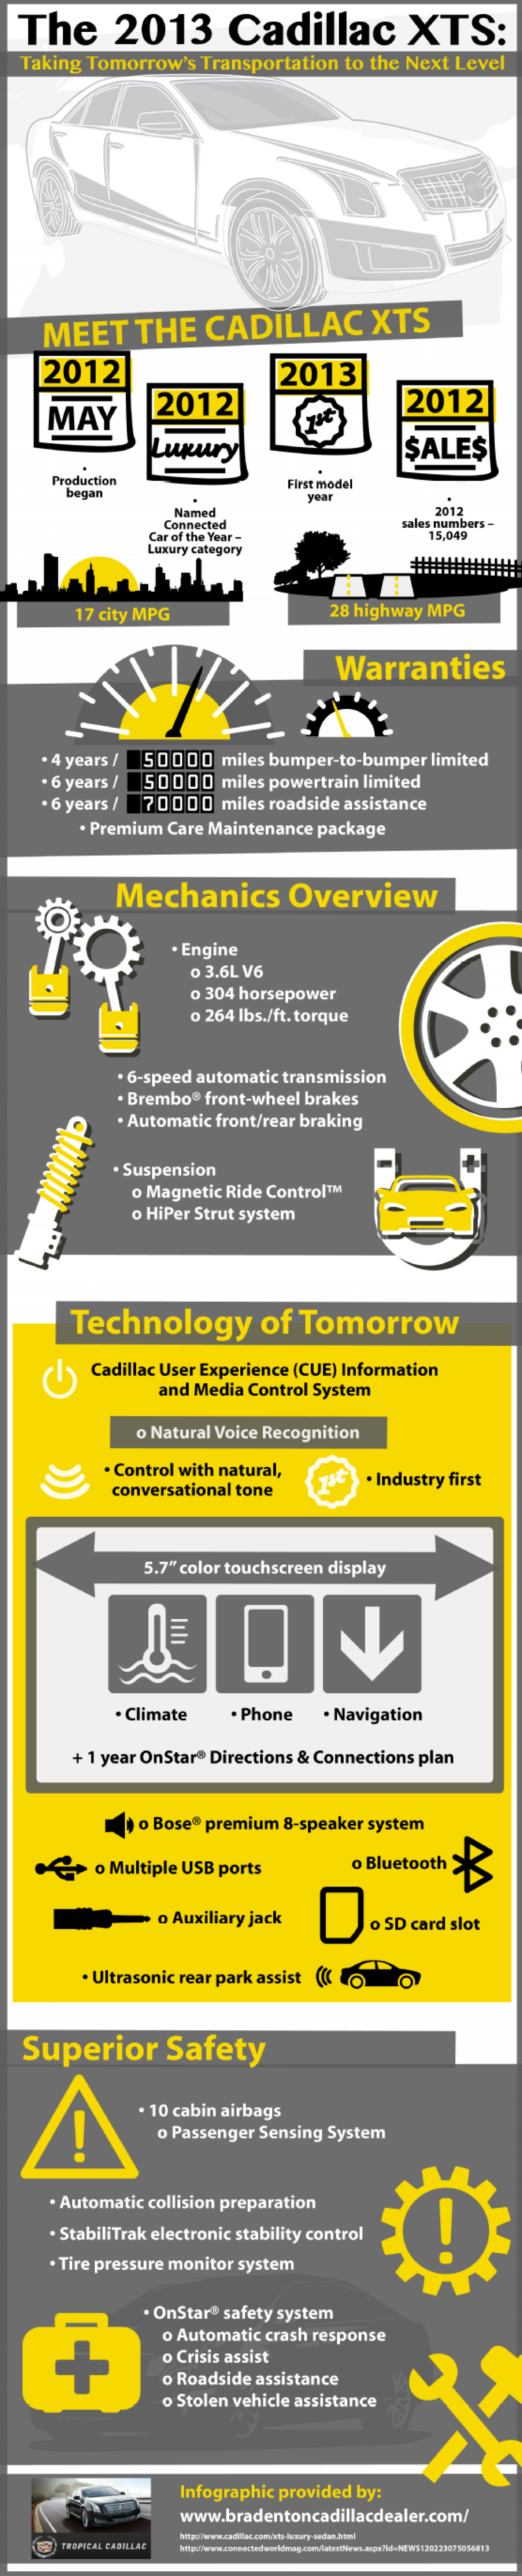 The 2013 Cadillac XTS: Taking Tomorrow's Transportation to the Next Level Infographic